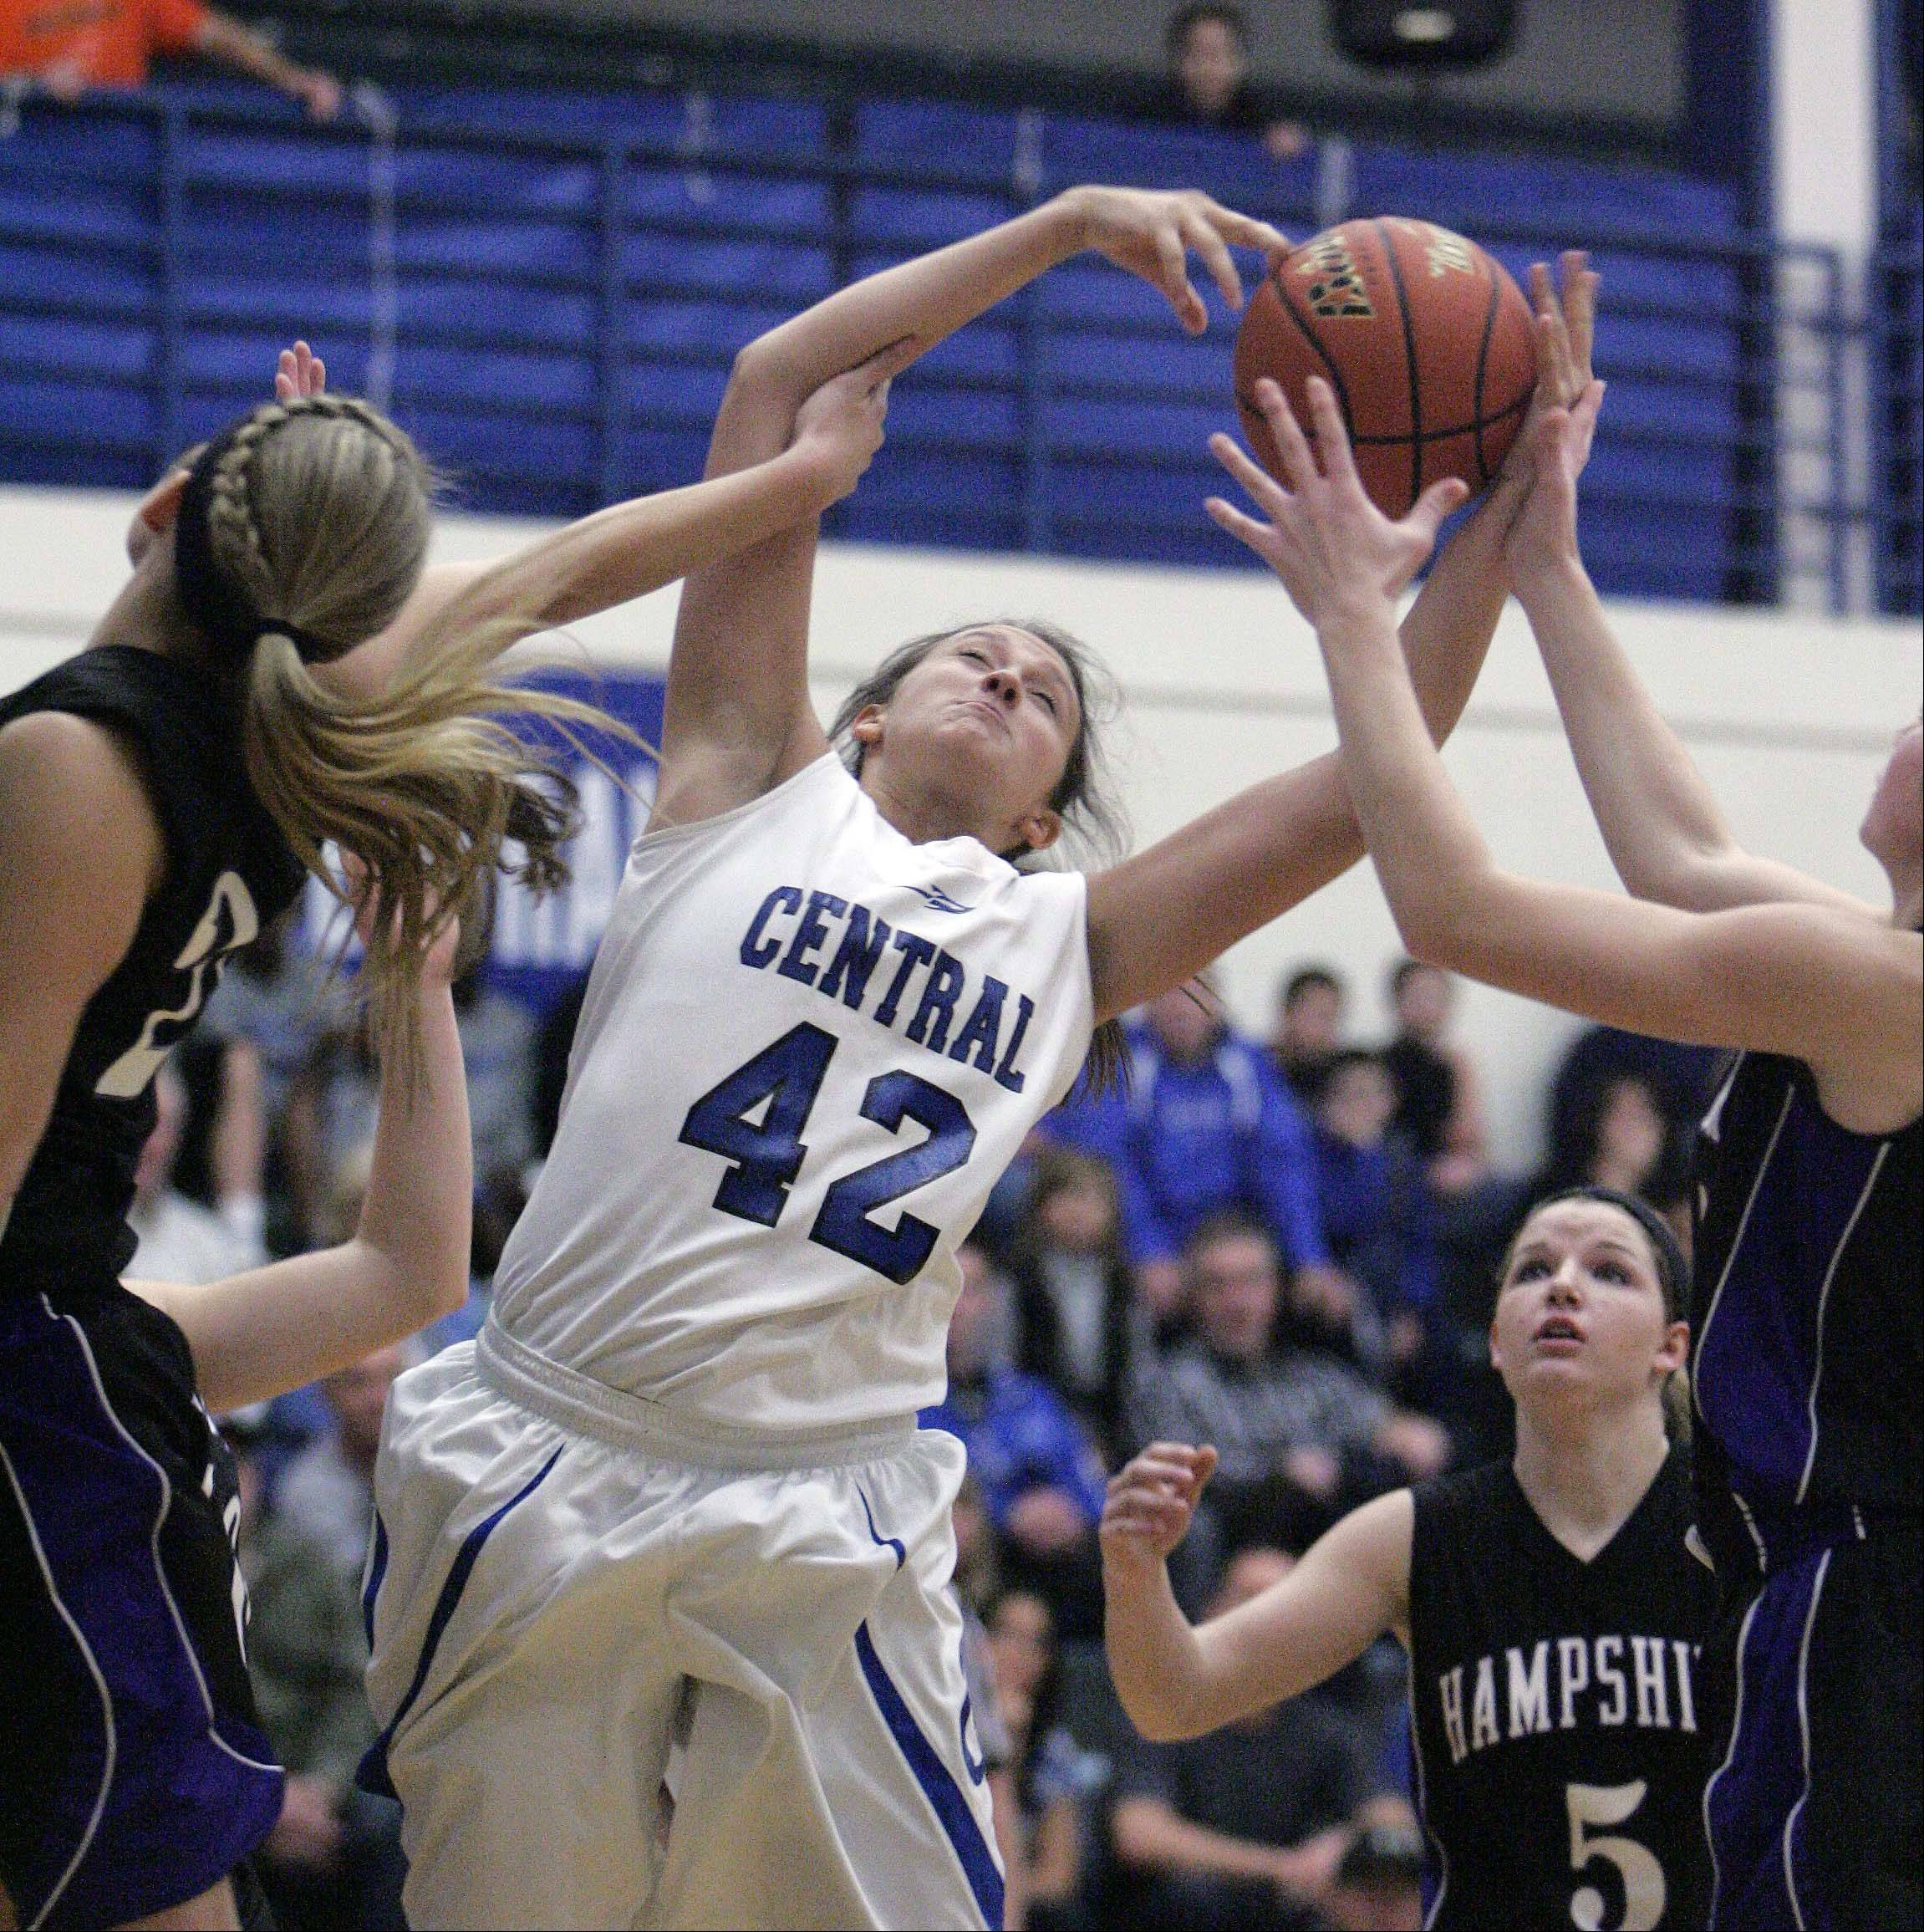 Burlington Central�s Alison Colby (42) rips down a rebound during the Rockets� 48-37 win over Hampshire at Burlington Central Saturday.